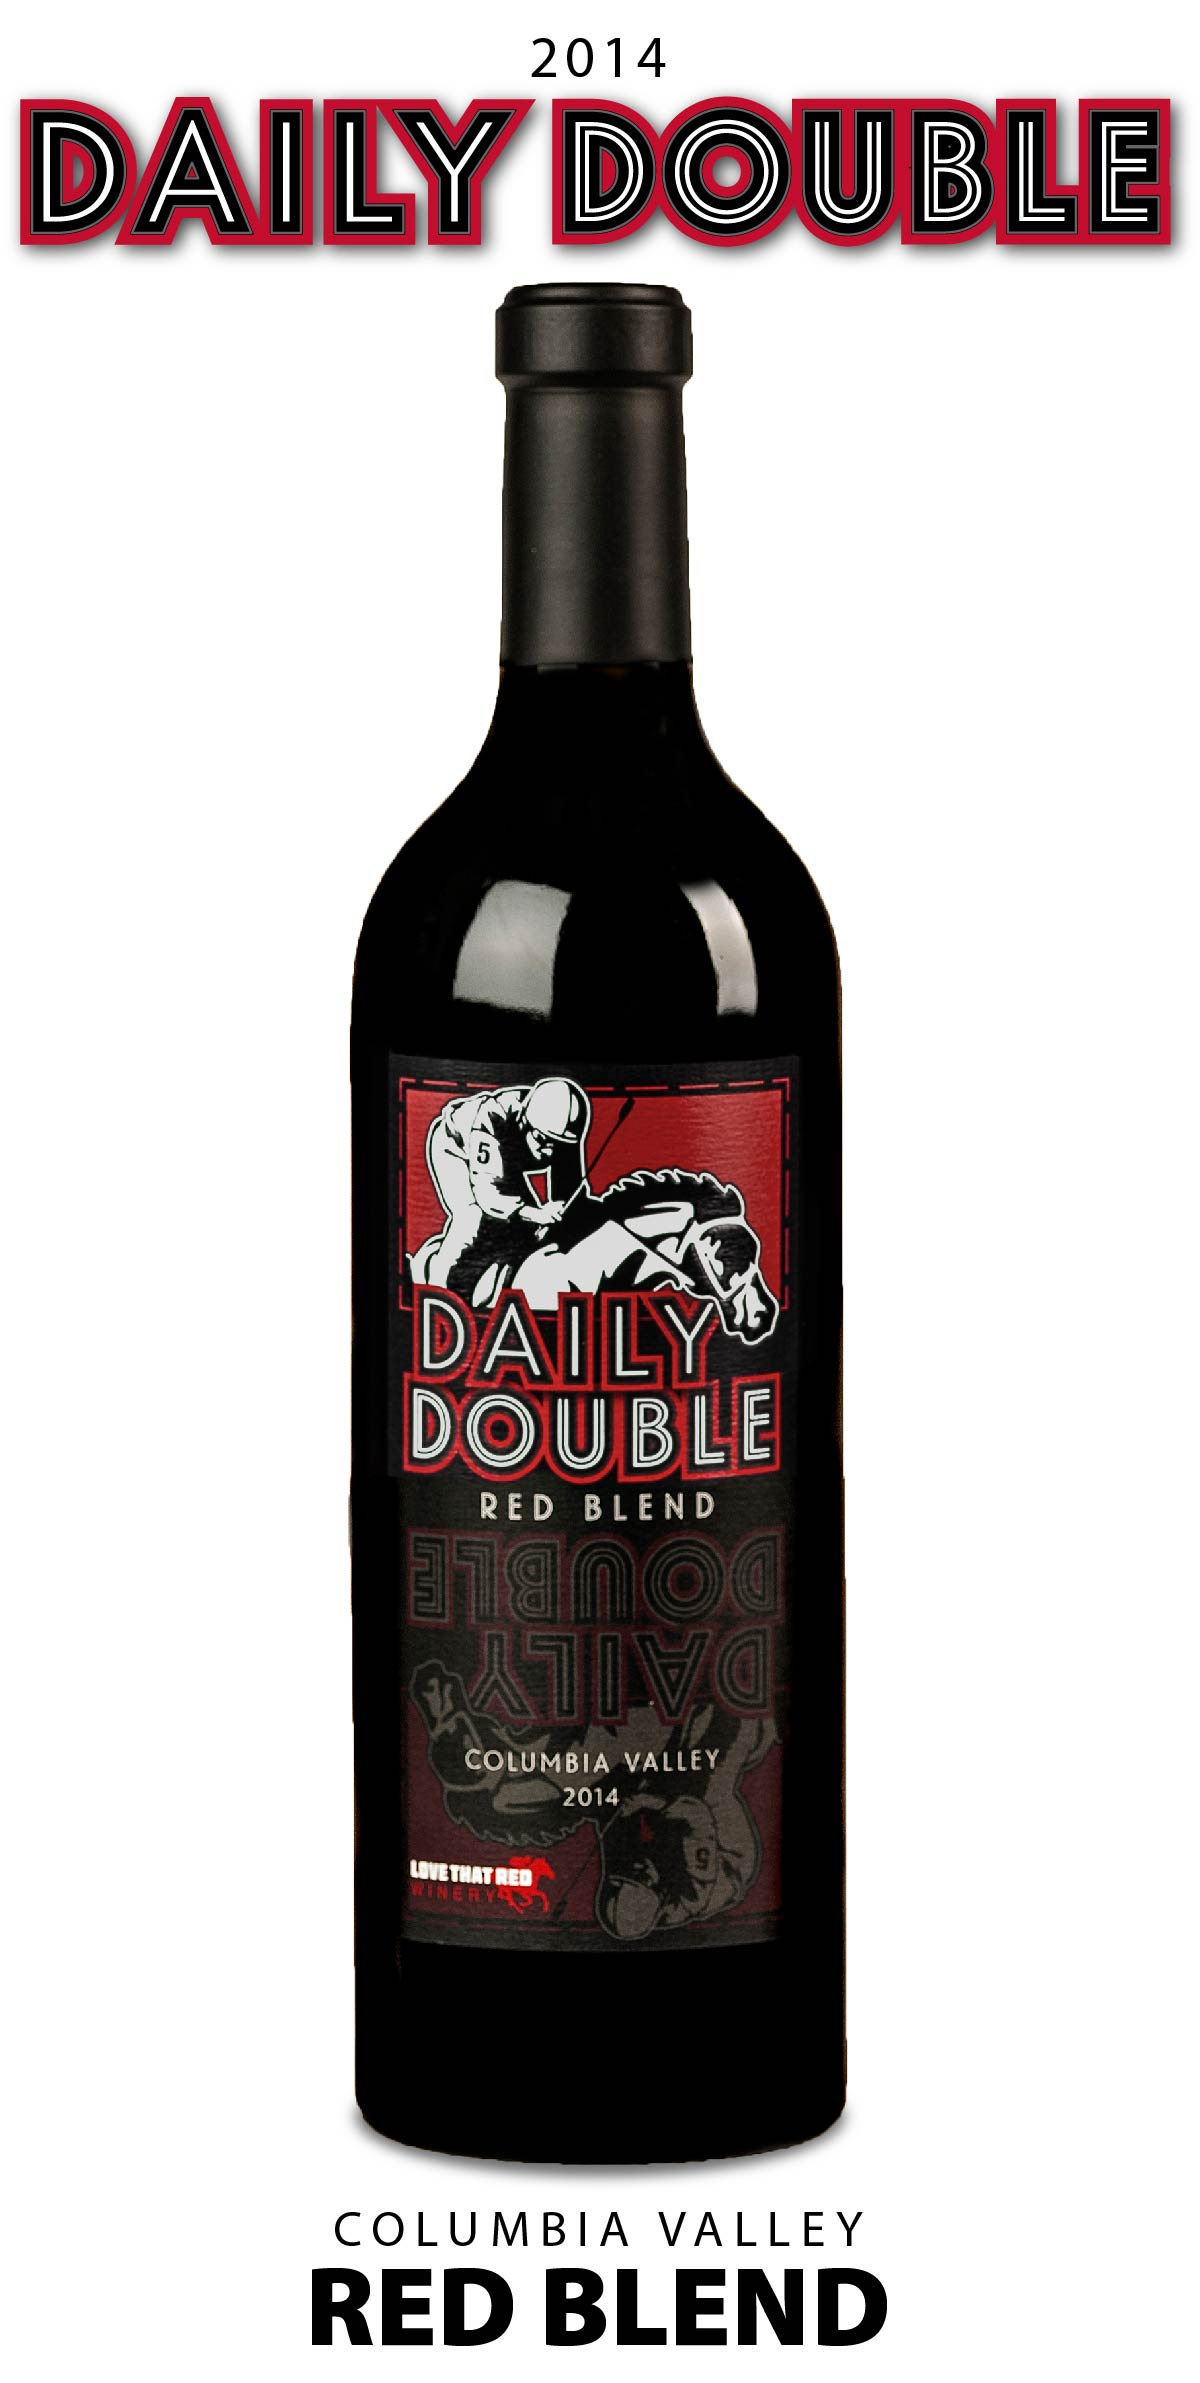 Daily Double Red Blend